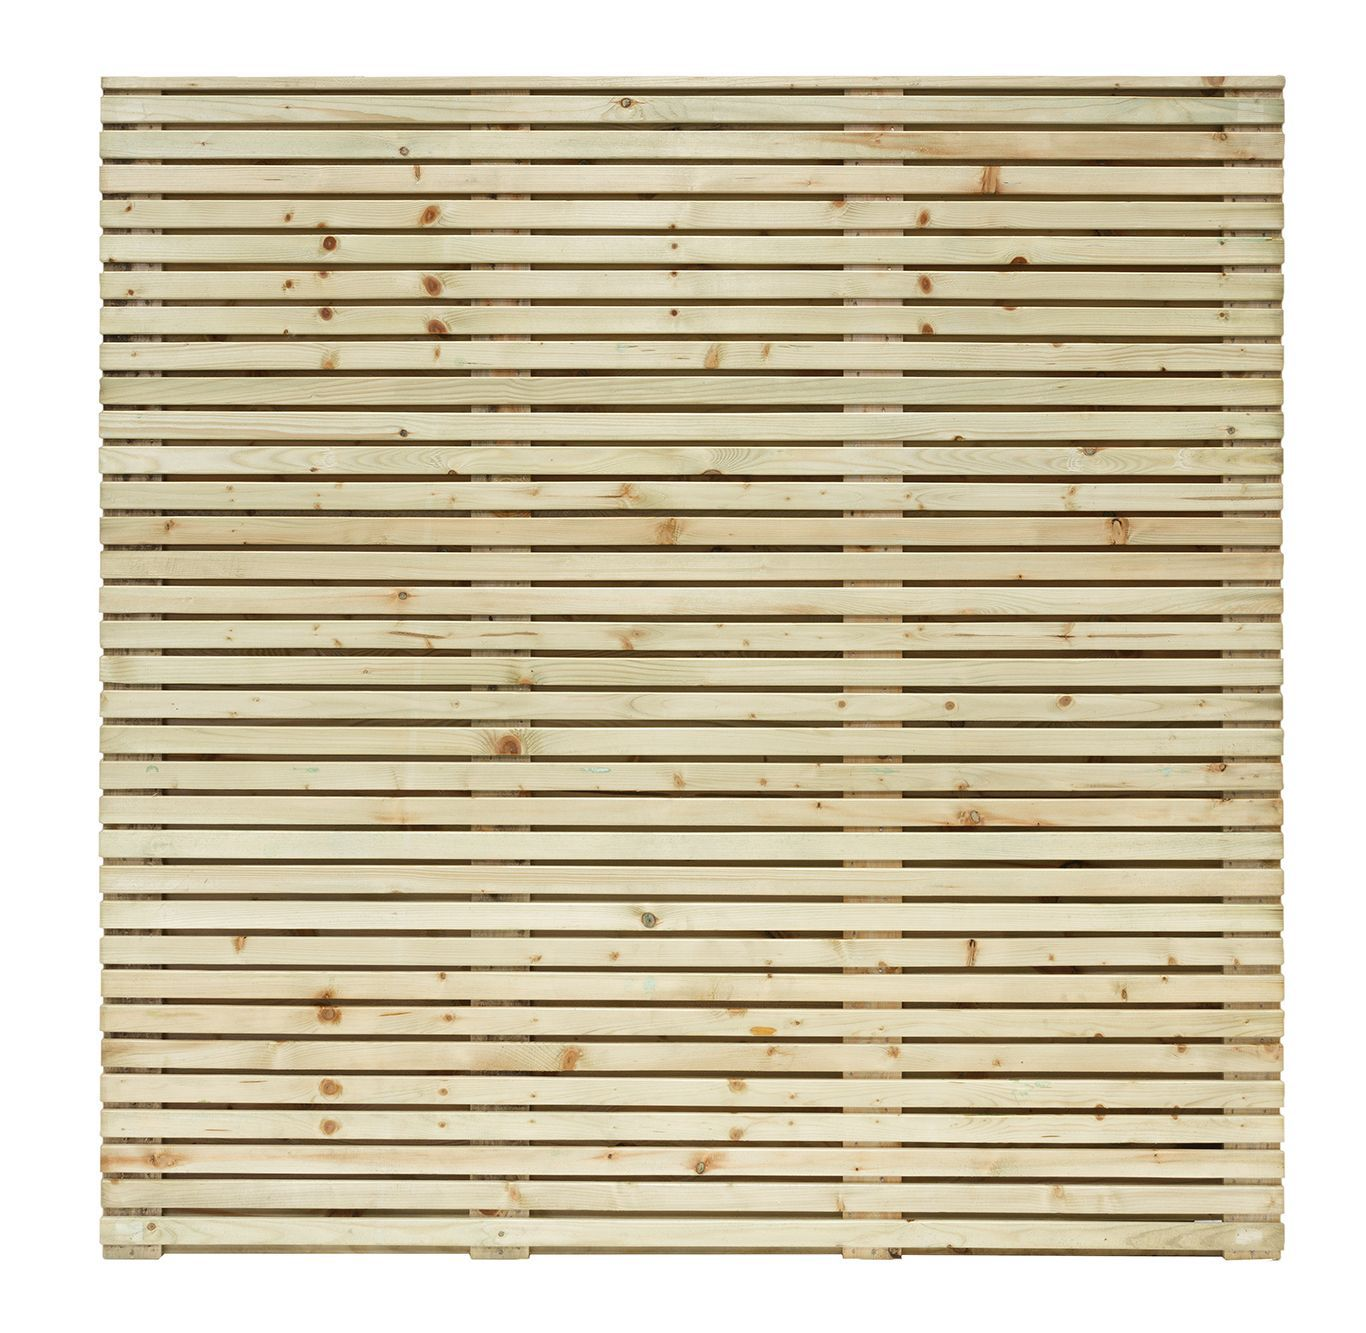 Grange Contemporary Horizontal Slat Fence Panel (w)1.79 M (h)1.79m, Pack Of 5